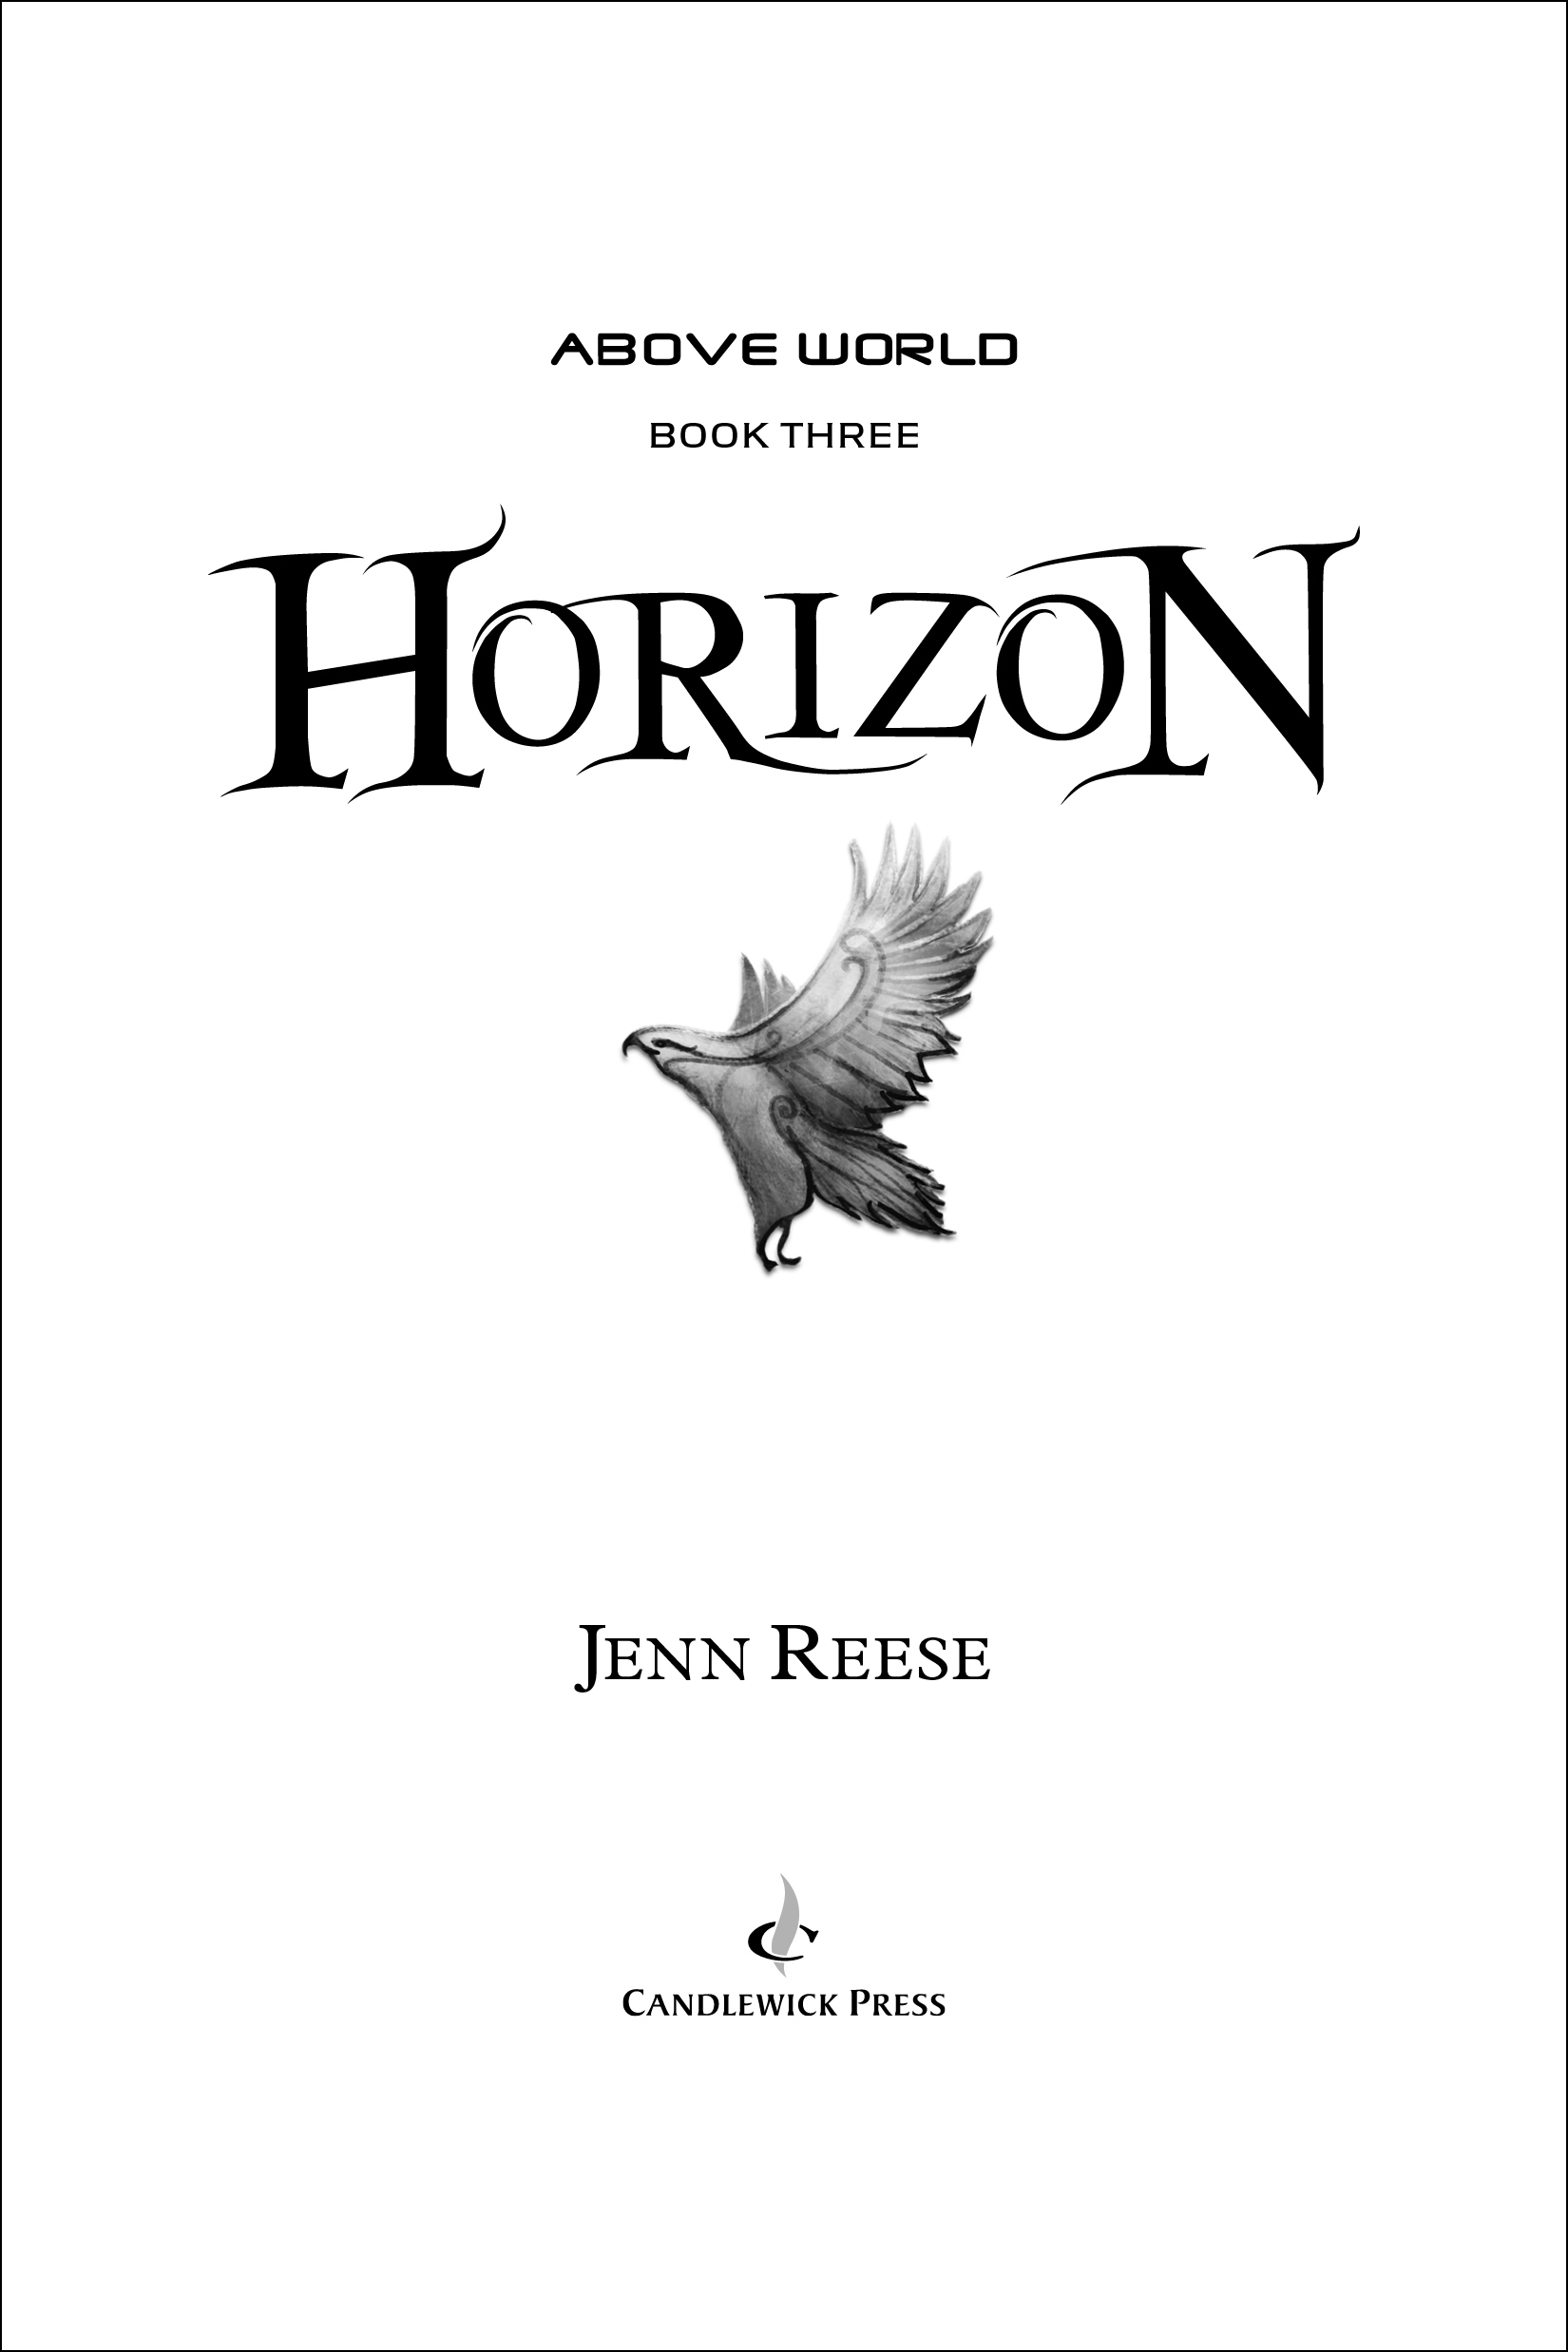 Title page for HORIZON